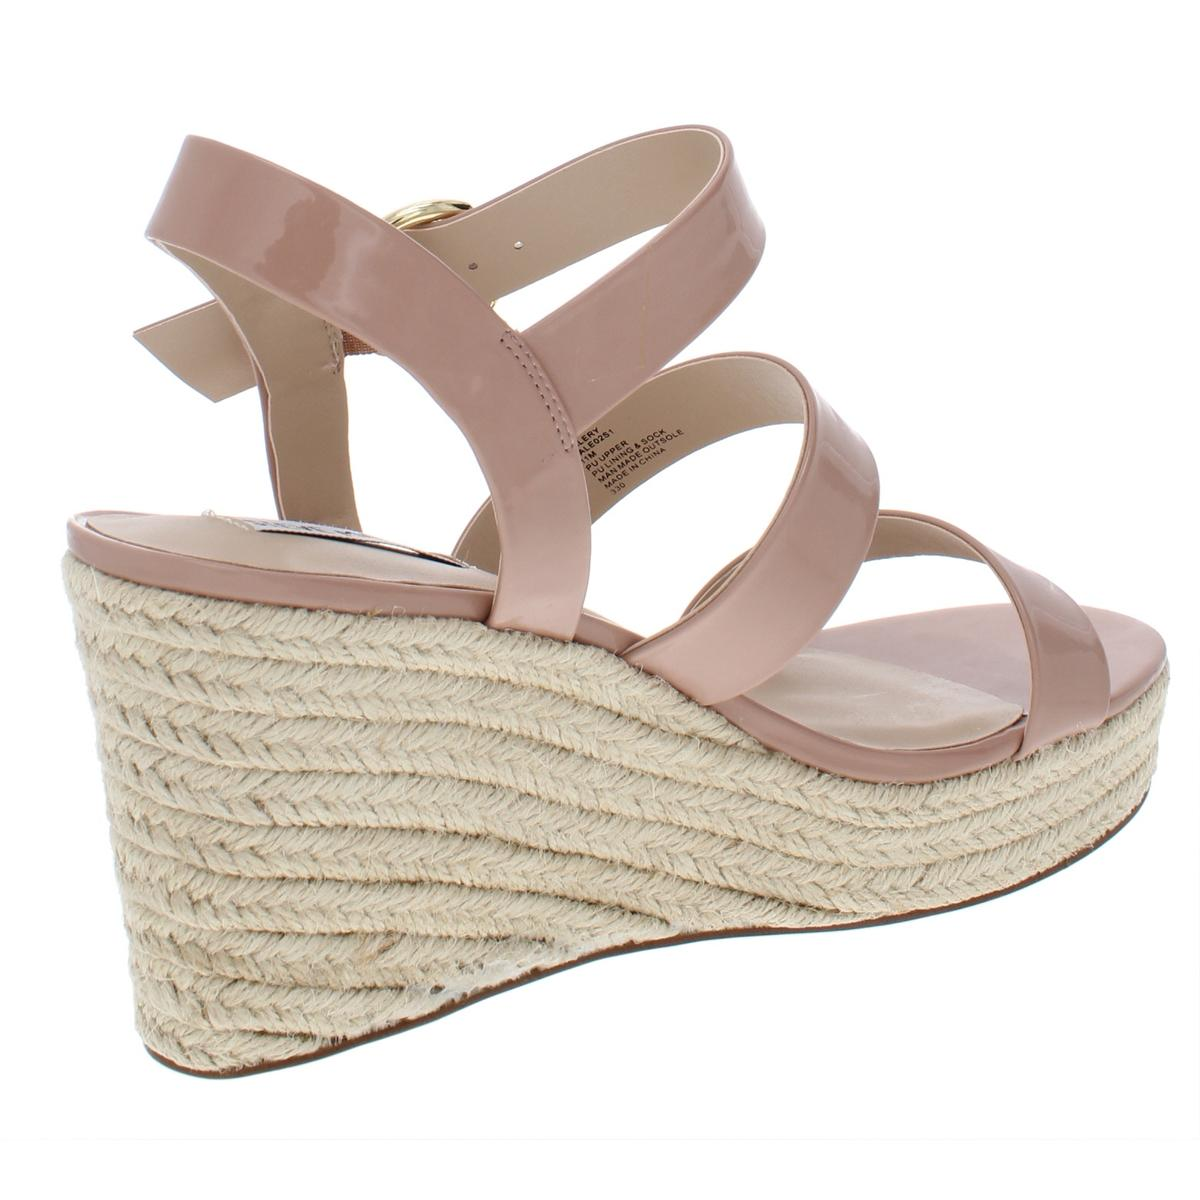 ab89d7f6d99 Details about Steve Madden Womens Valery Wedges Strappy Espadrilles Sandals  BHFO 3448